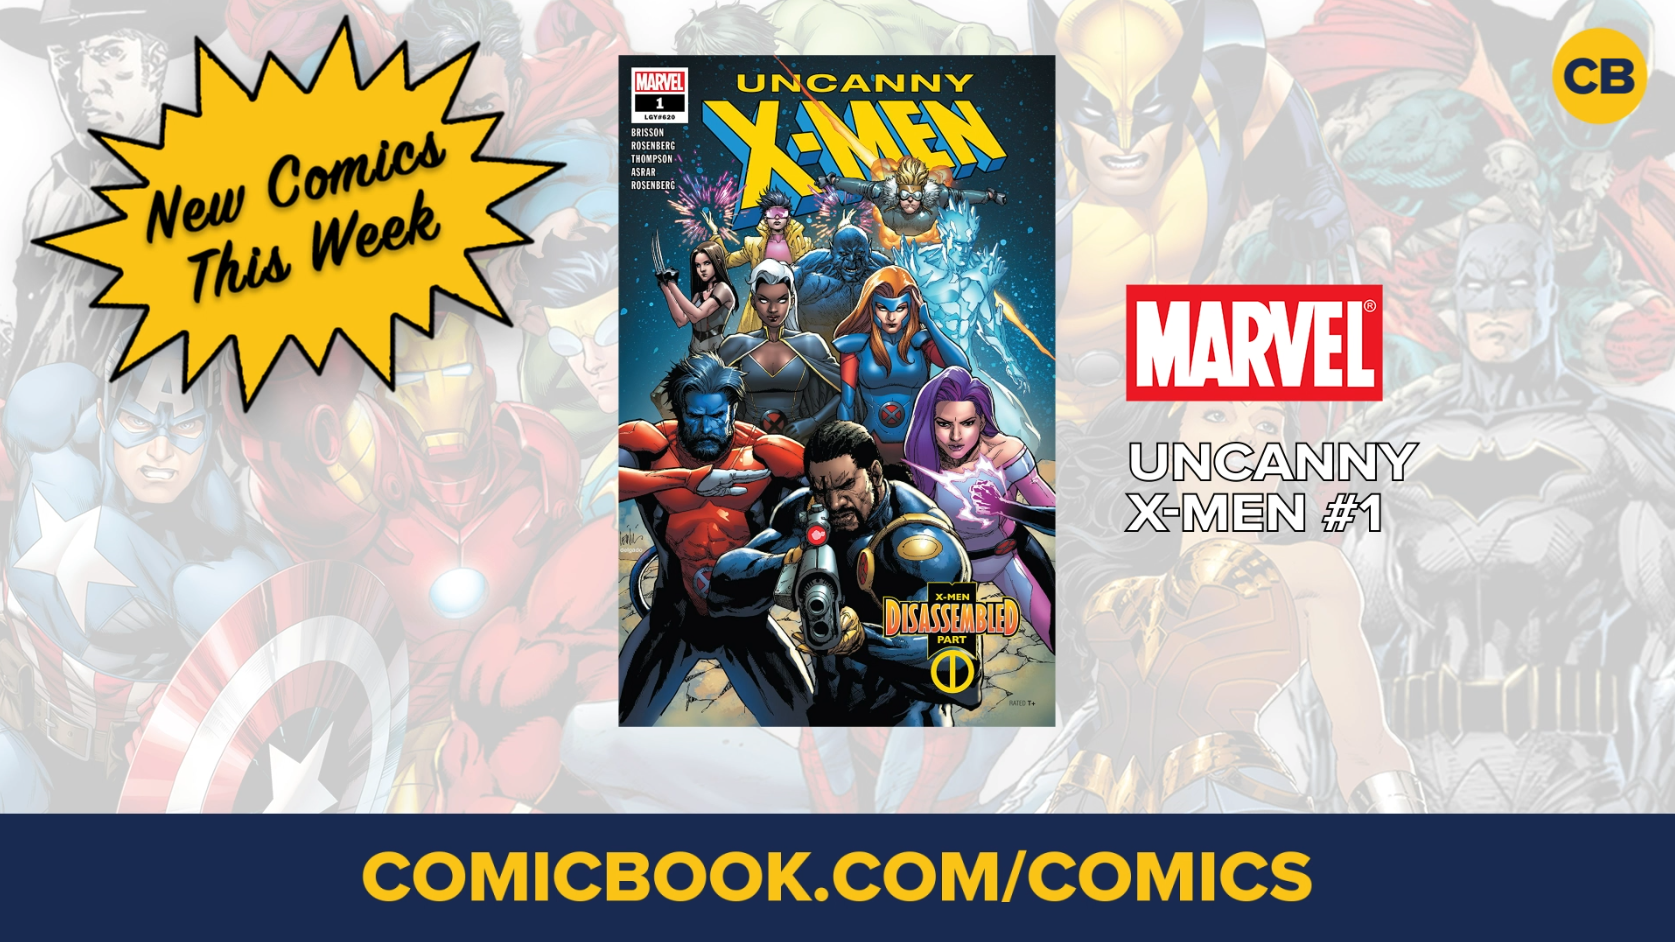 NEW Marvel, DC and Image Comics Out This Week: November 7, 2018 02:08     Comicbook NEW Marvel, DC and Image Comics Out This Week: November 14, 2018 screen capture